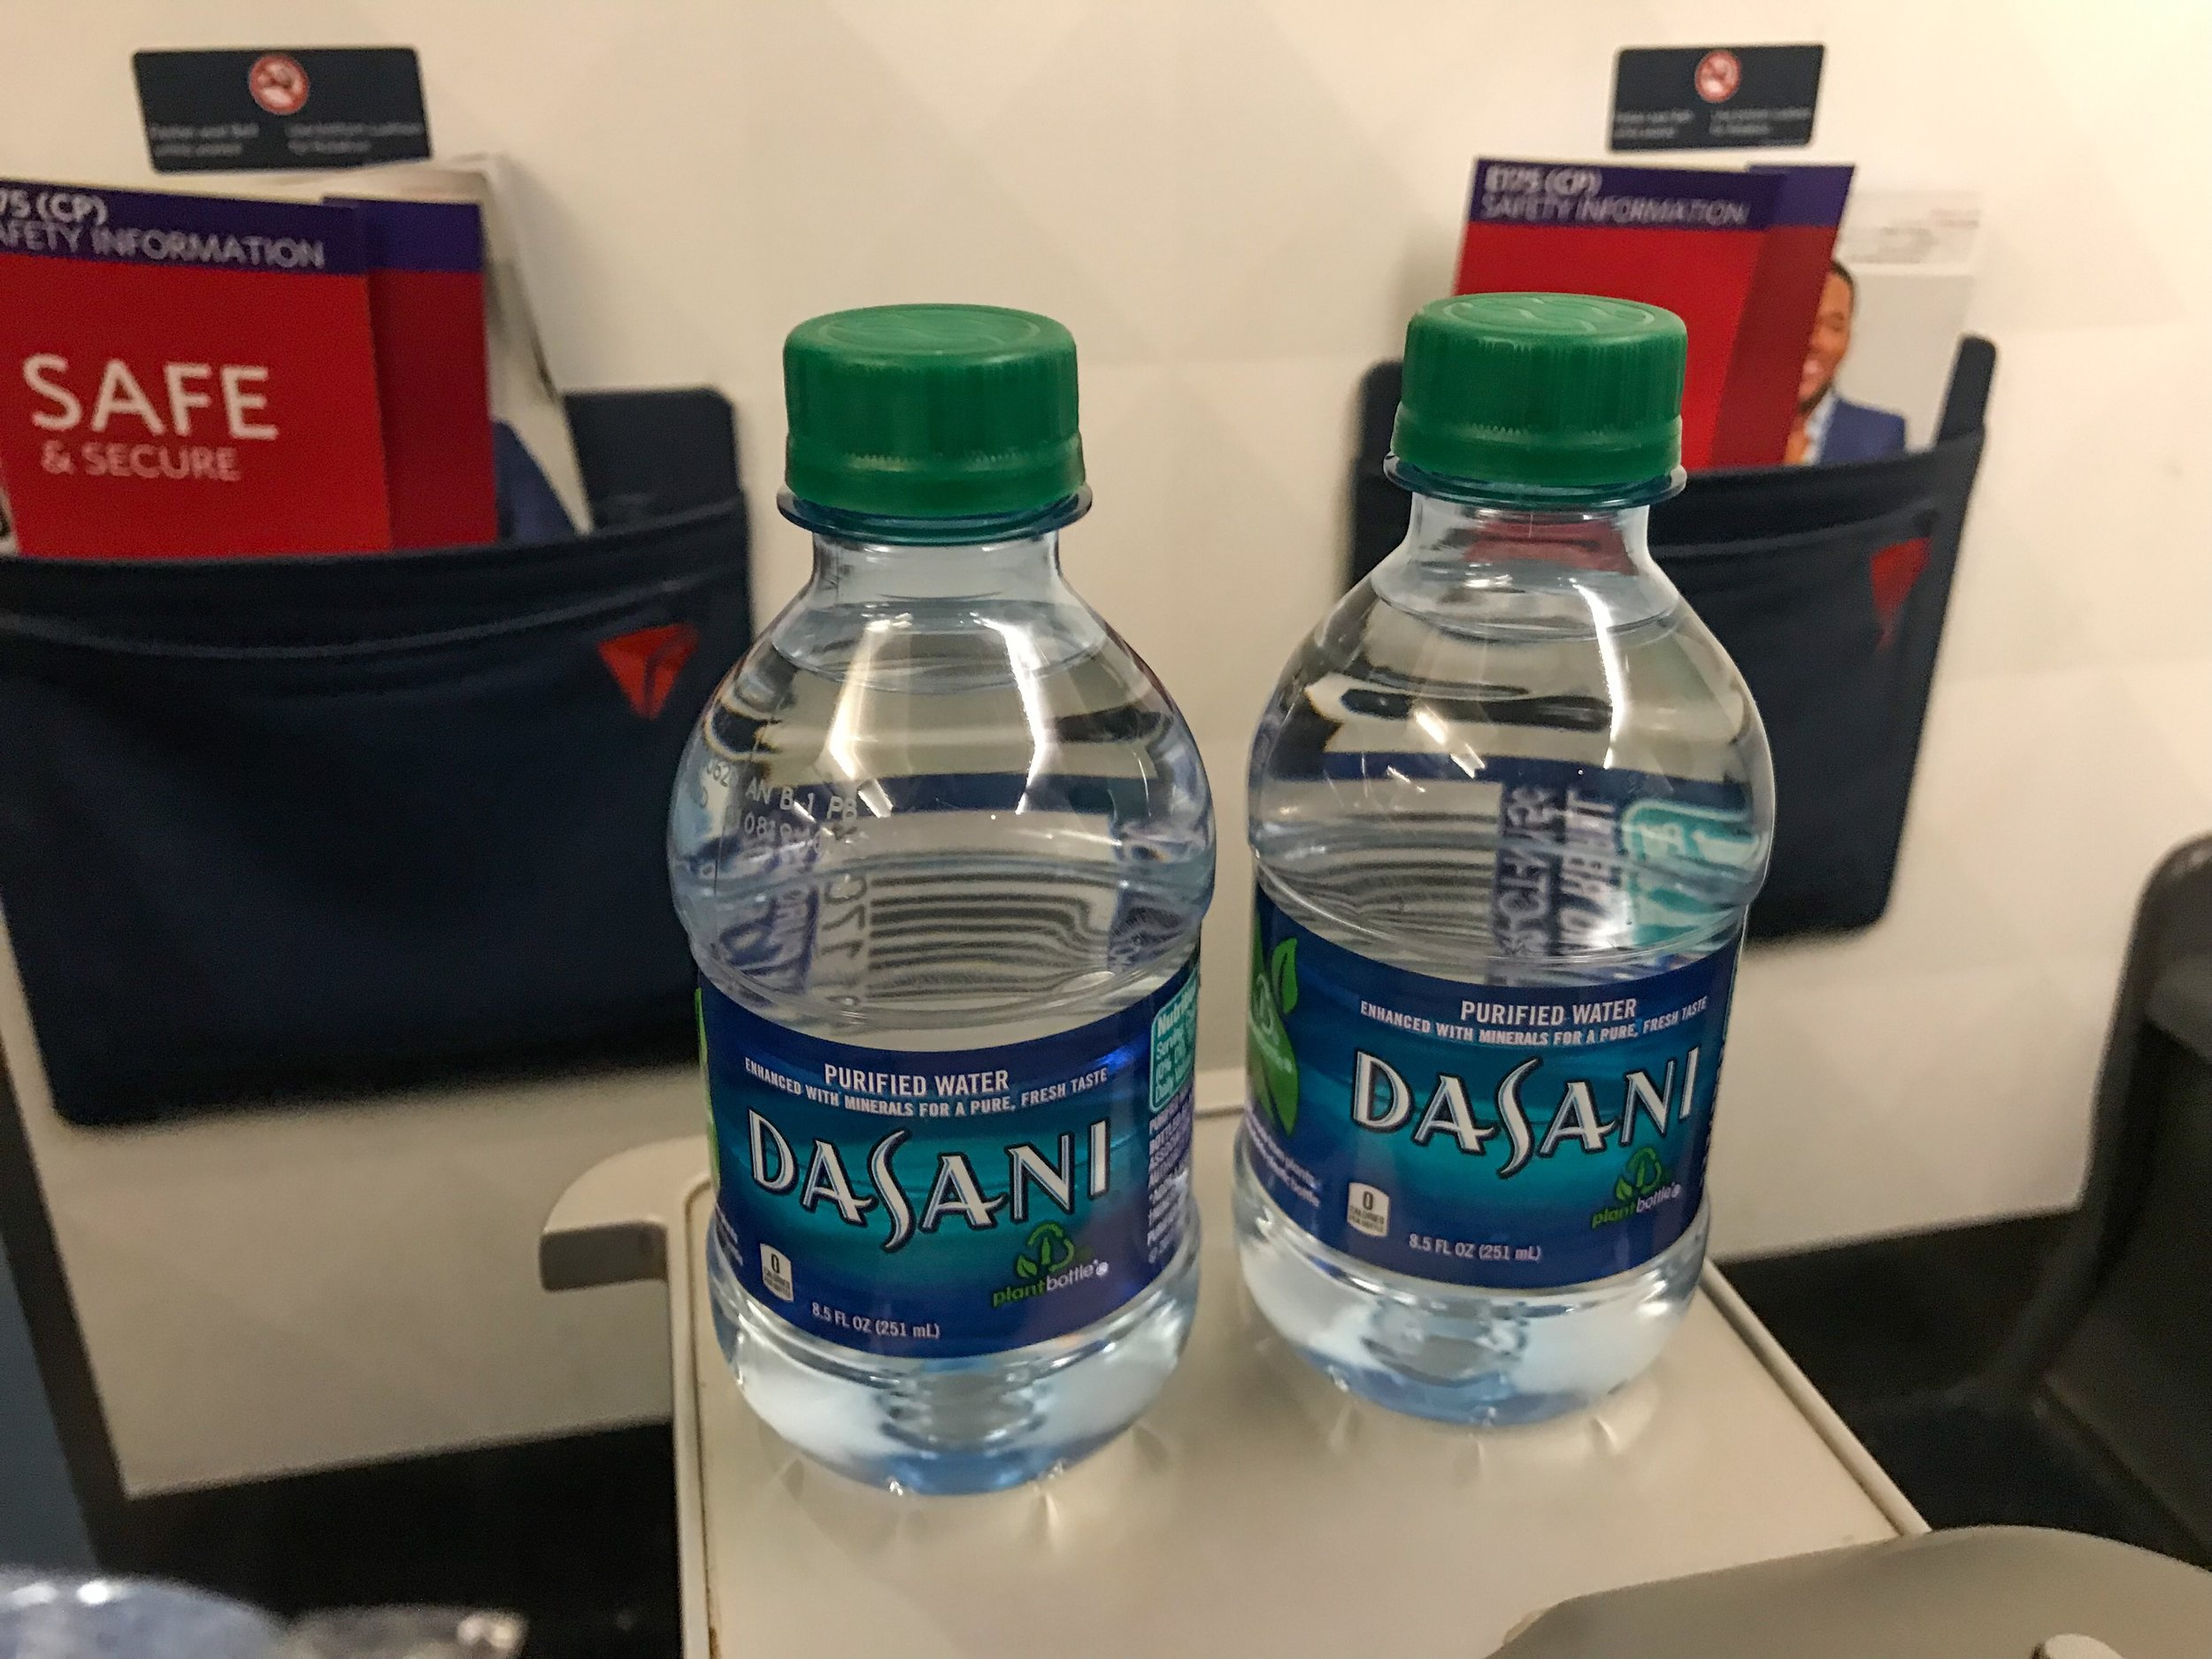 First Class passengers are provided Dasani water bottles, in addition to pre-departure beverage service (both alcoholic and non-alcoholic). Though, due to the delay, pre-departure service was suspended on this flight in order to expedite departure.